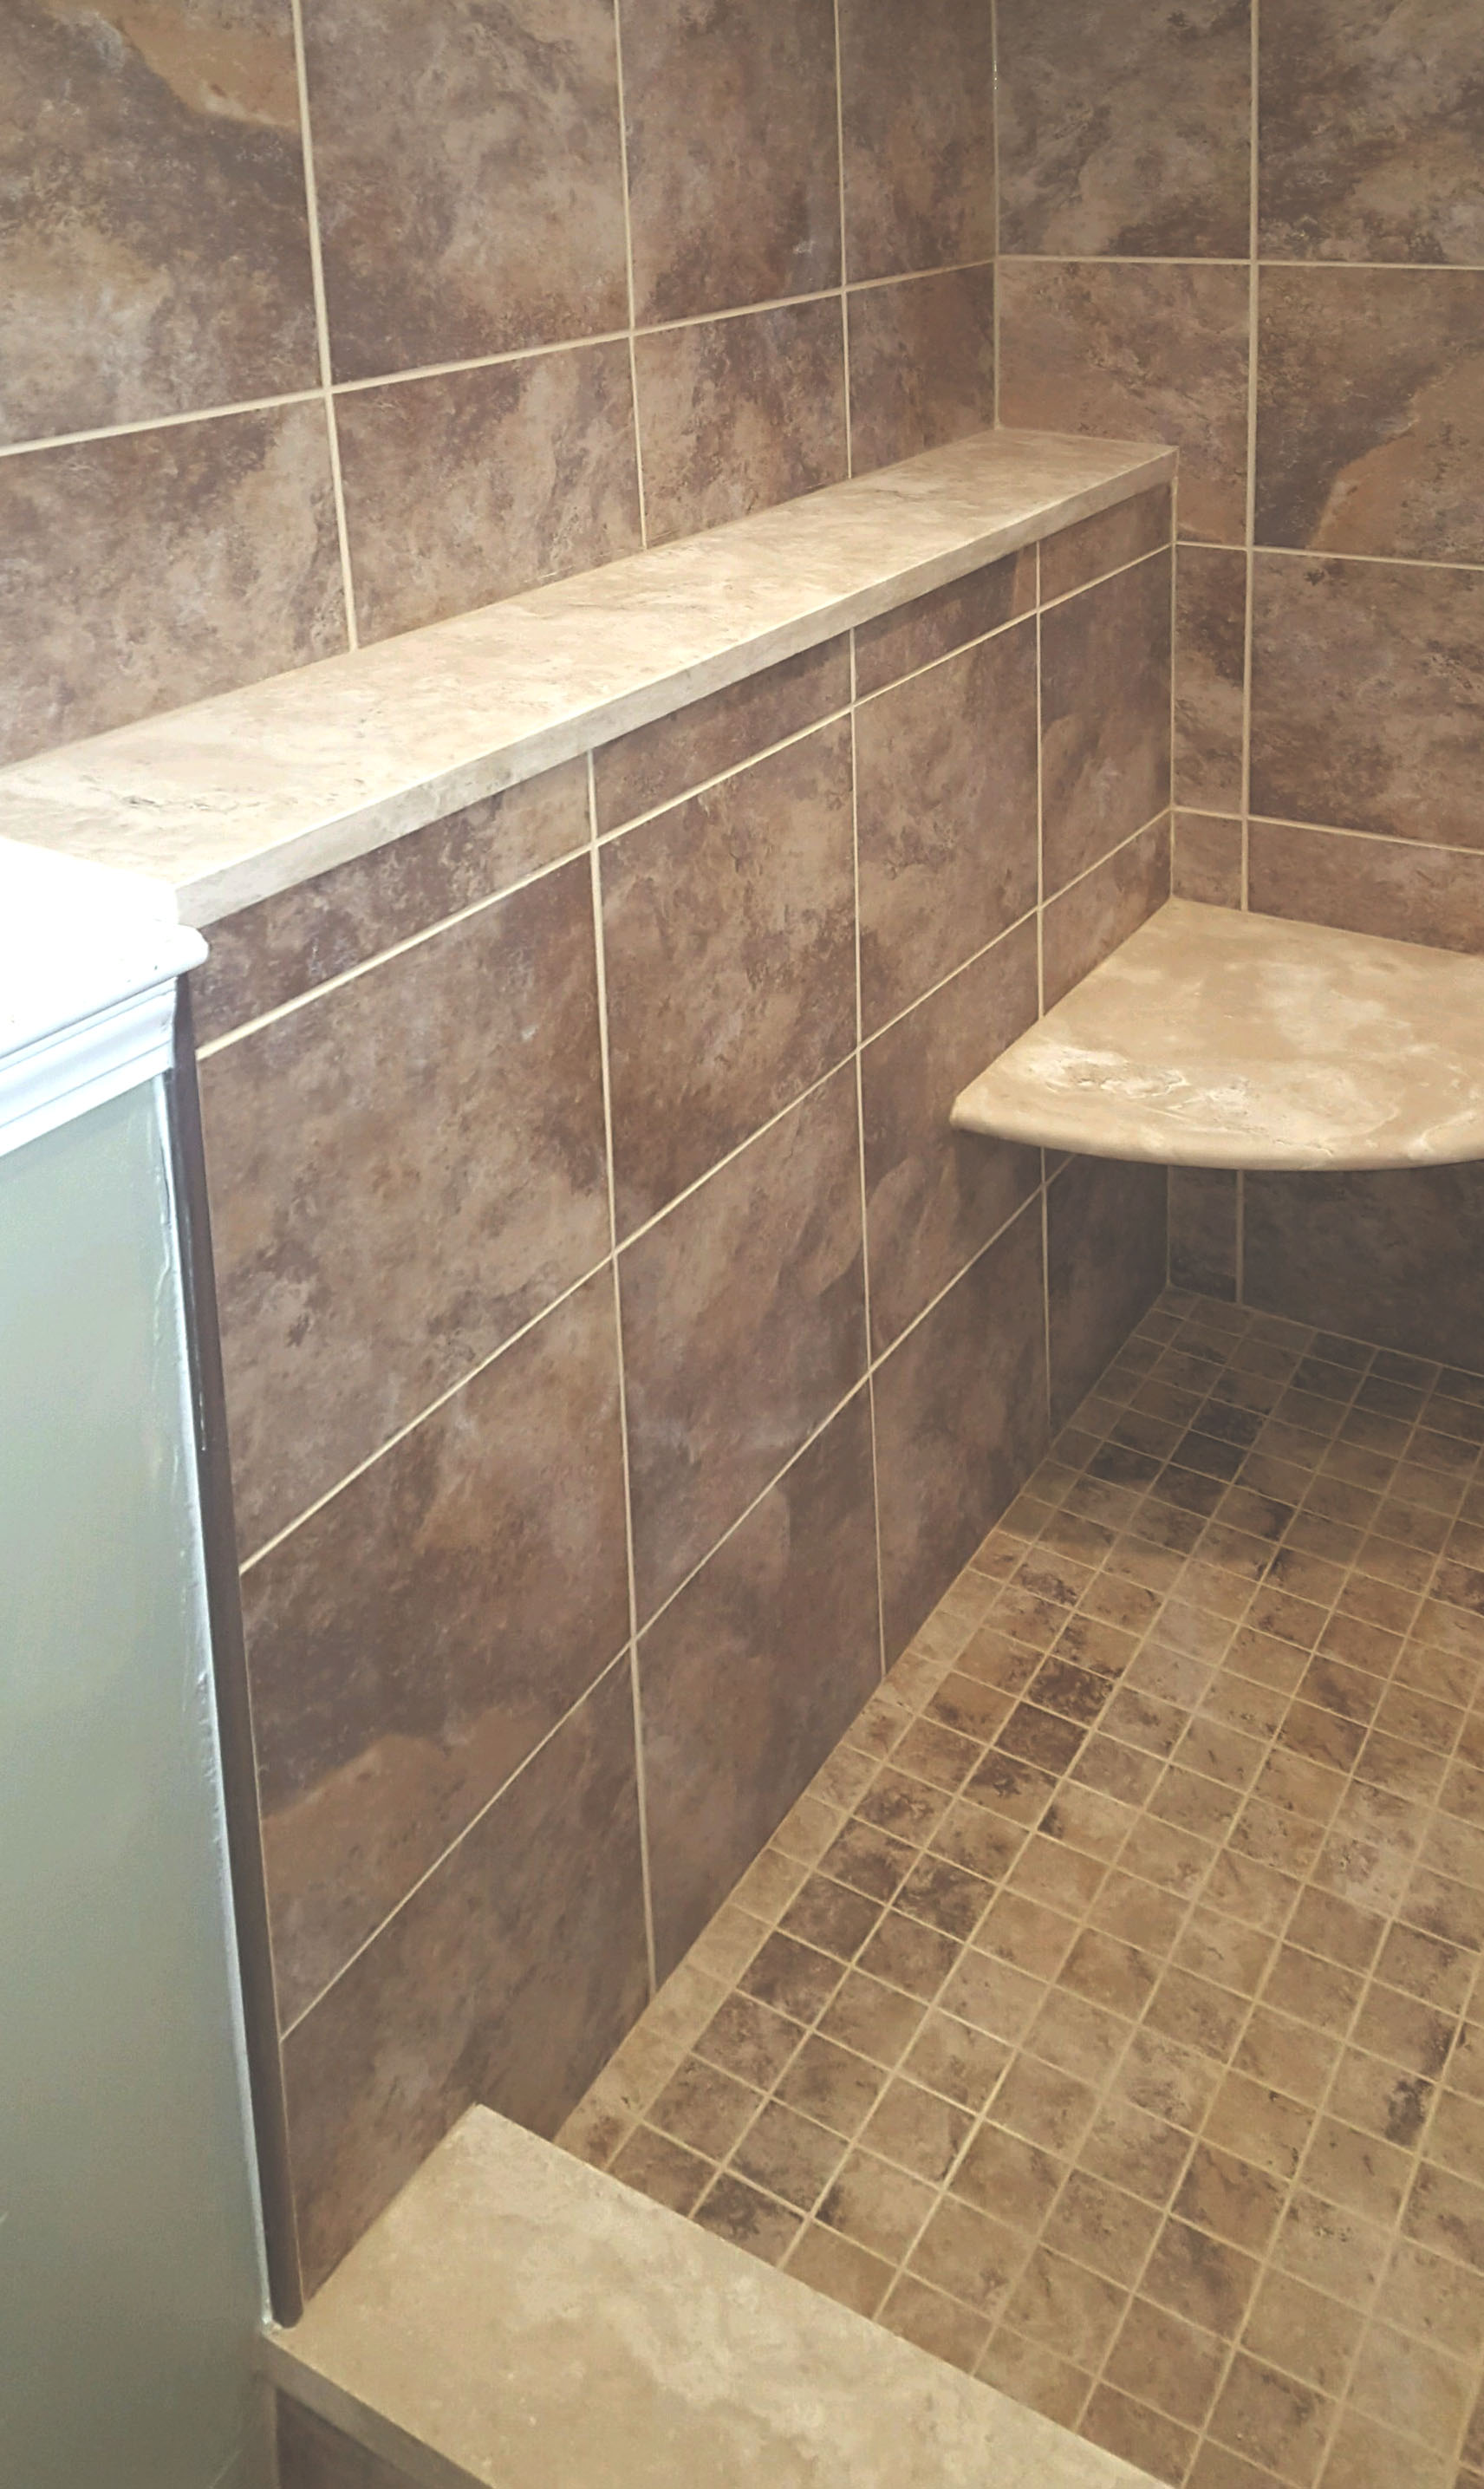 tiled shower corner niche & shelf